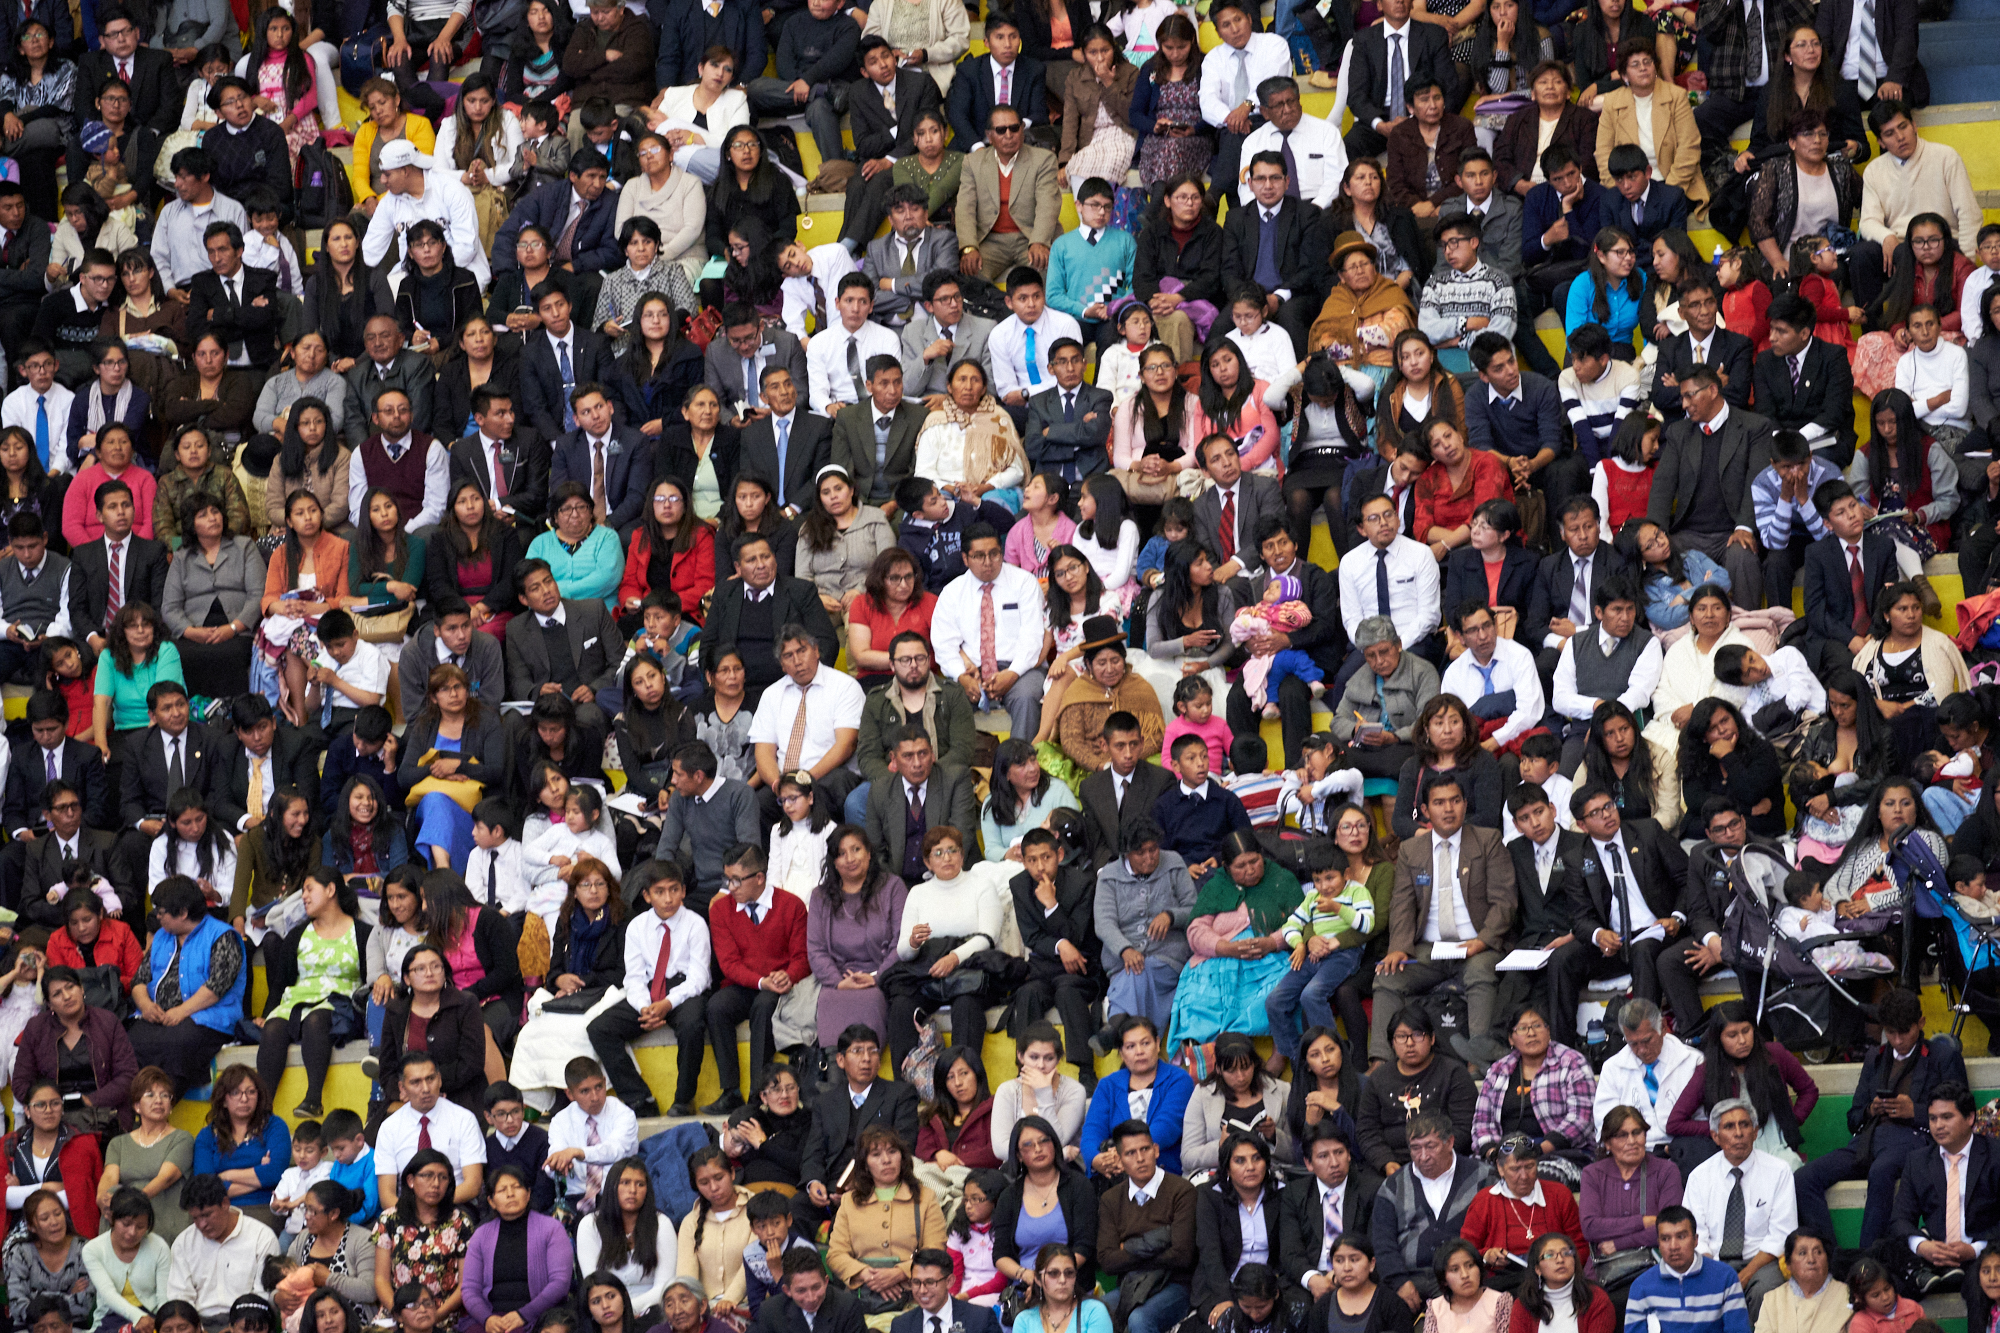 Thousands of Latter-day Saints in Bolivia listen to their prophet, President Russell M. Nelson, during a Sunday devotional, Oct. 21, 2018, in the Polideportivo Heroes de Octobre in El Alto, Bolivia. Many more members of the Church watched via a country-wide broadcast.